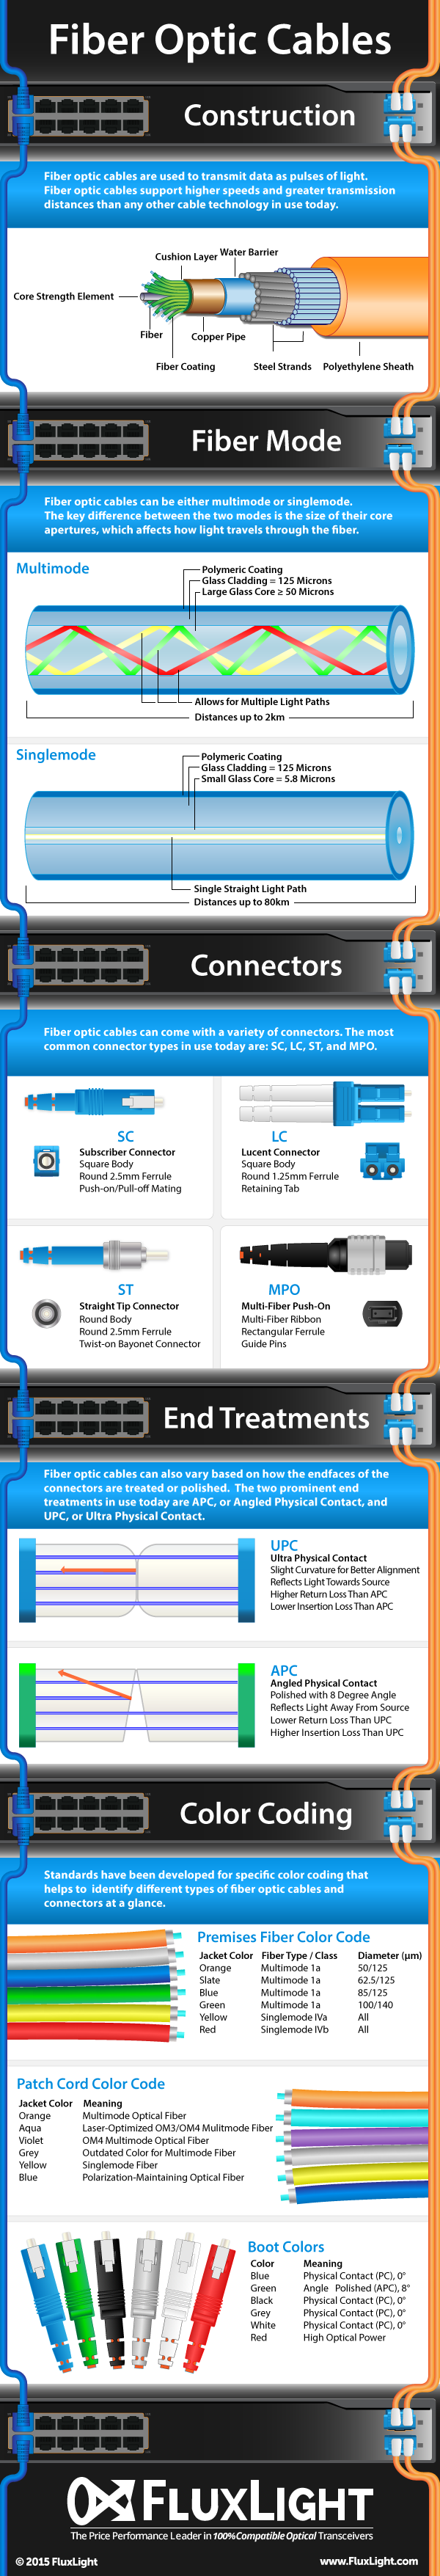 fiber optic cables infographic